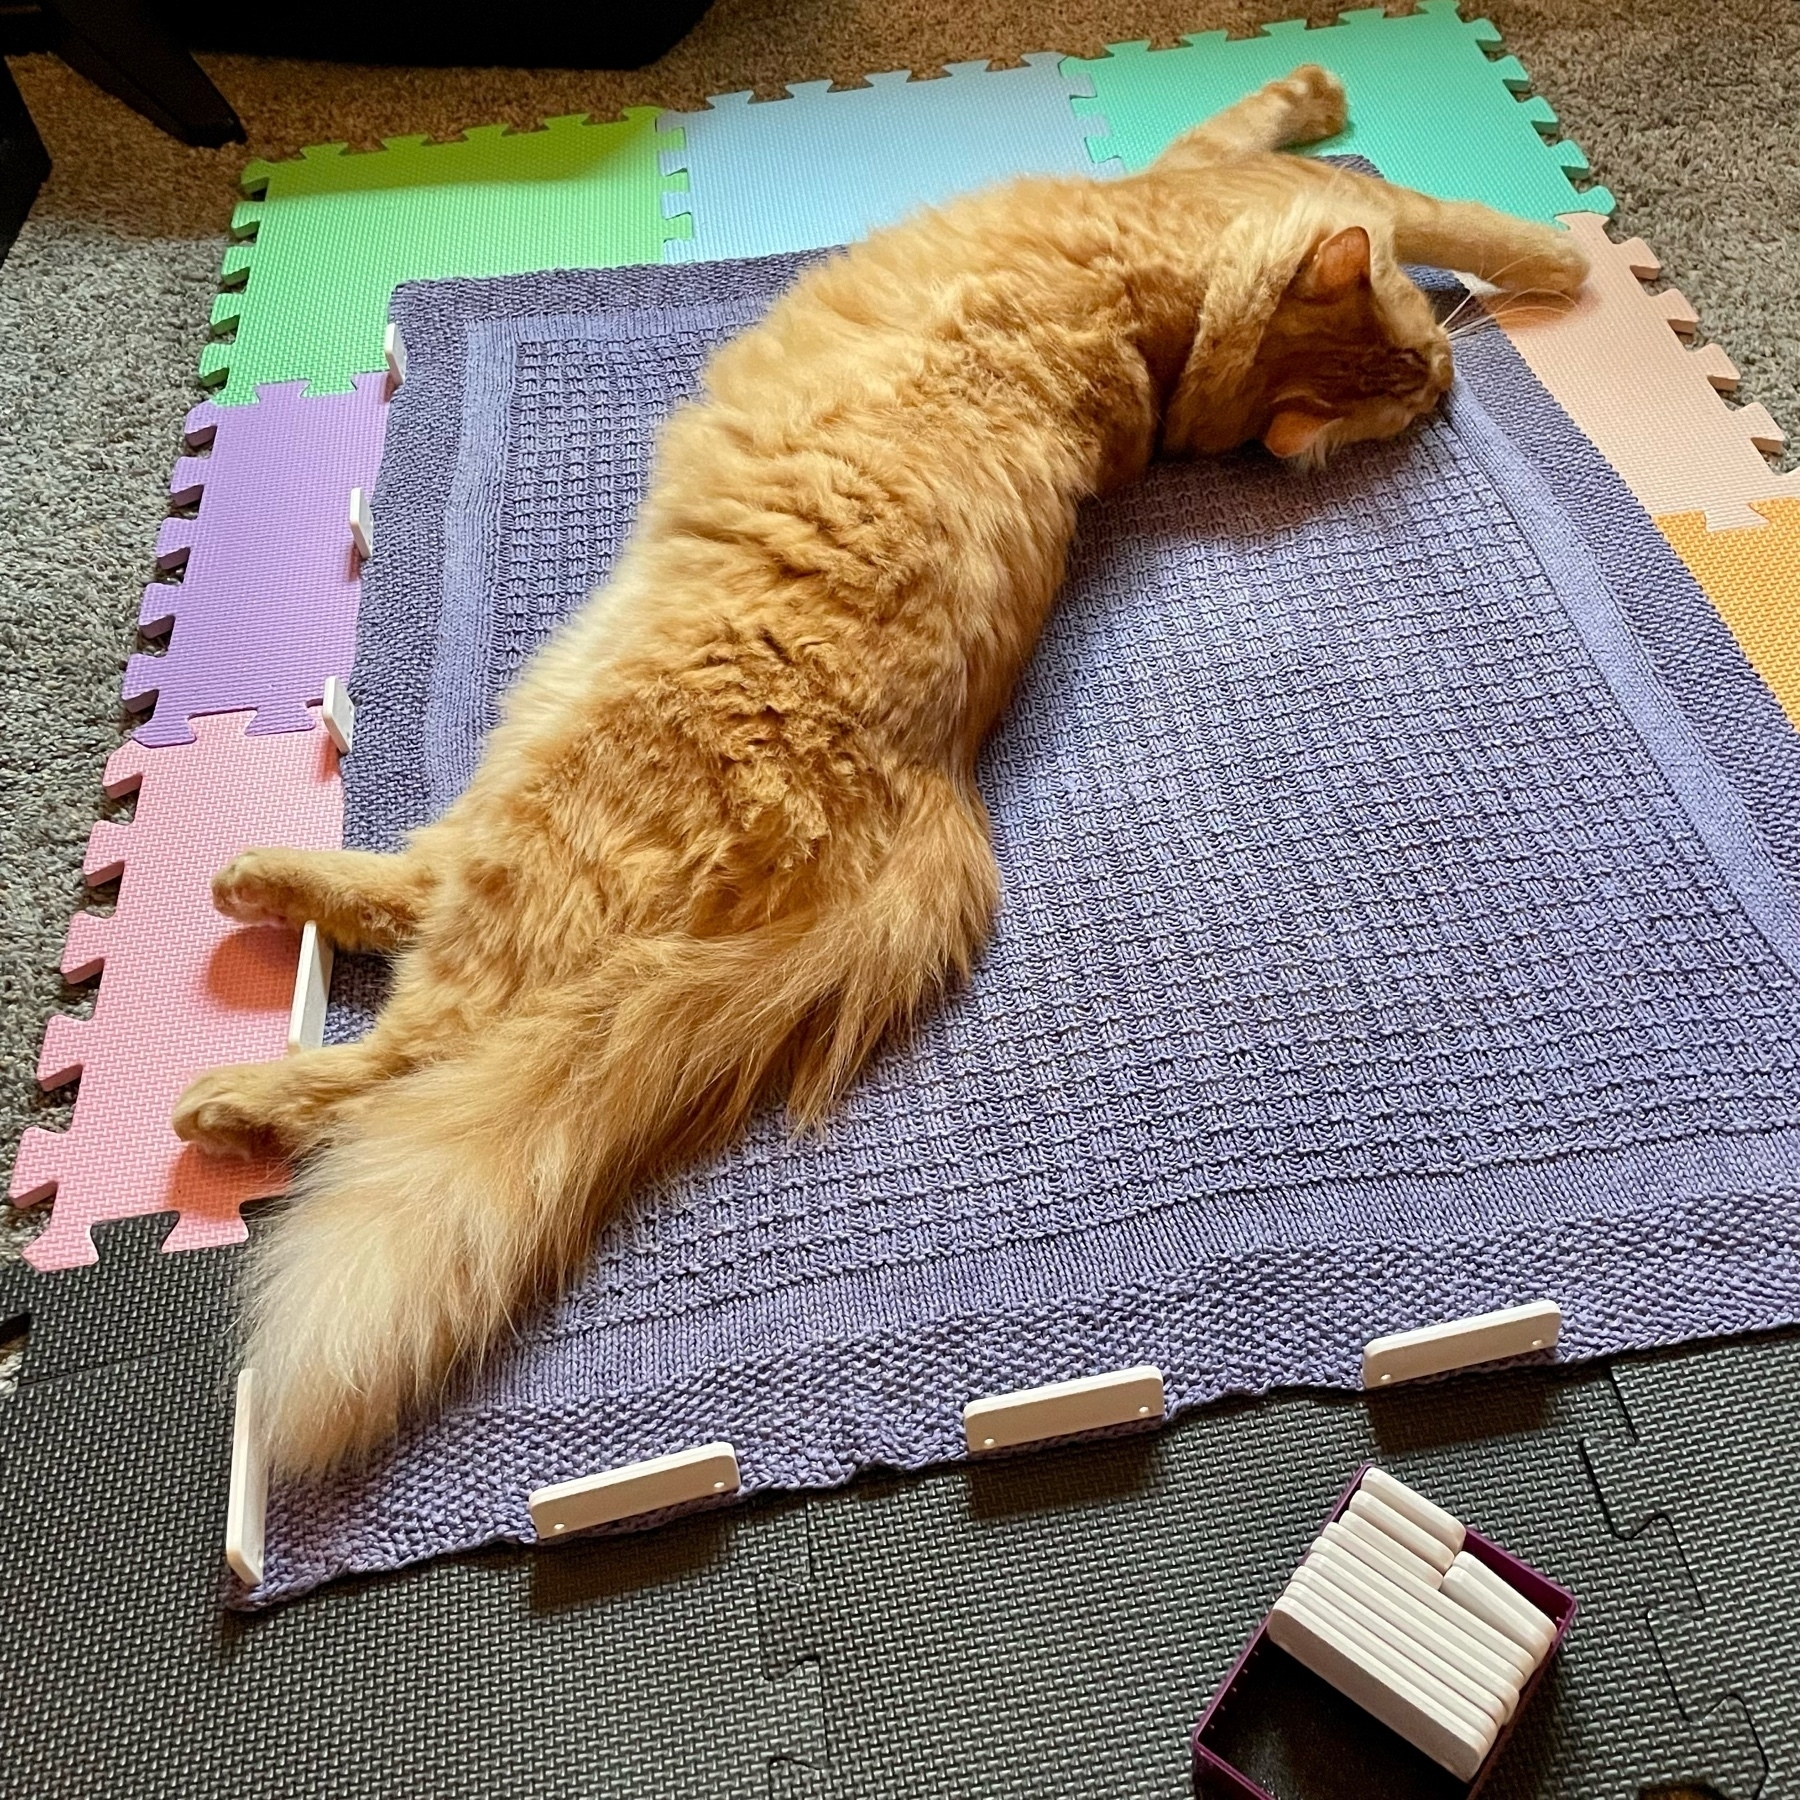 large orange cat stretched out on knitted blanket